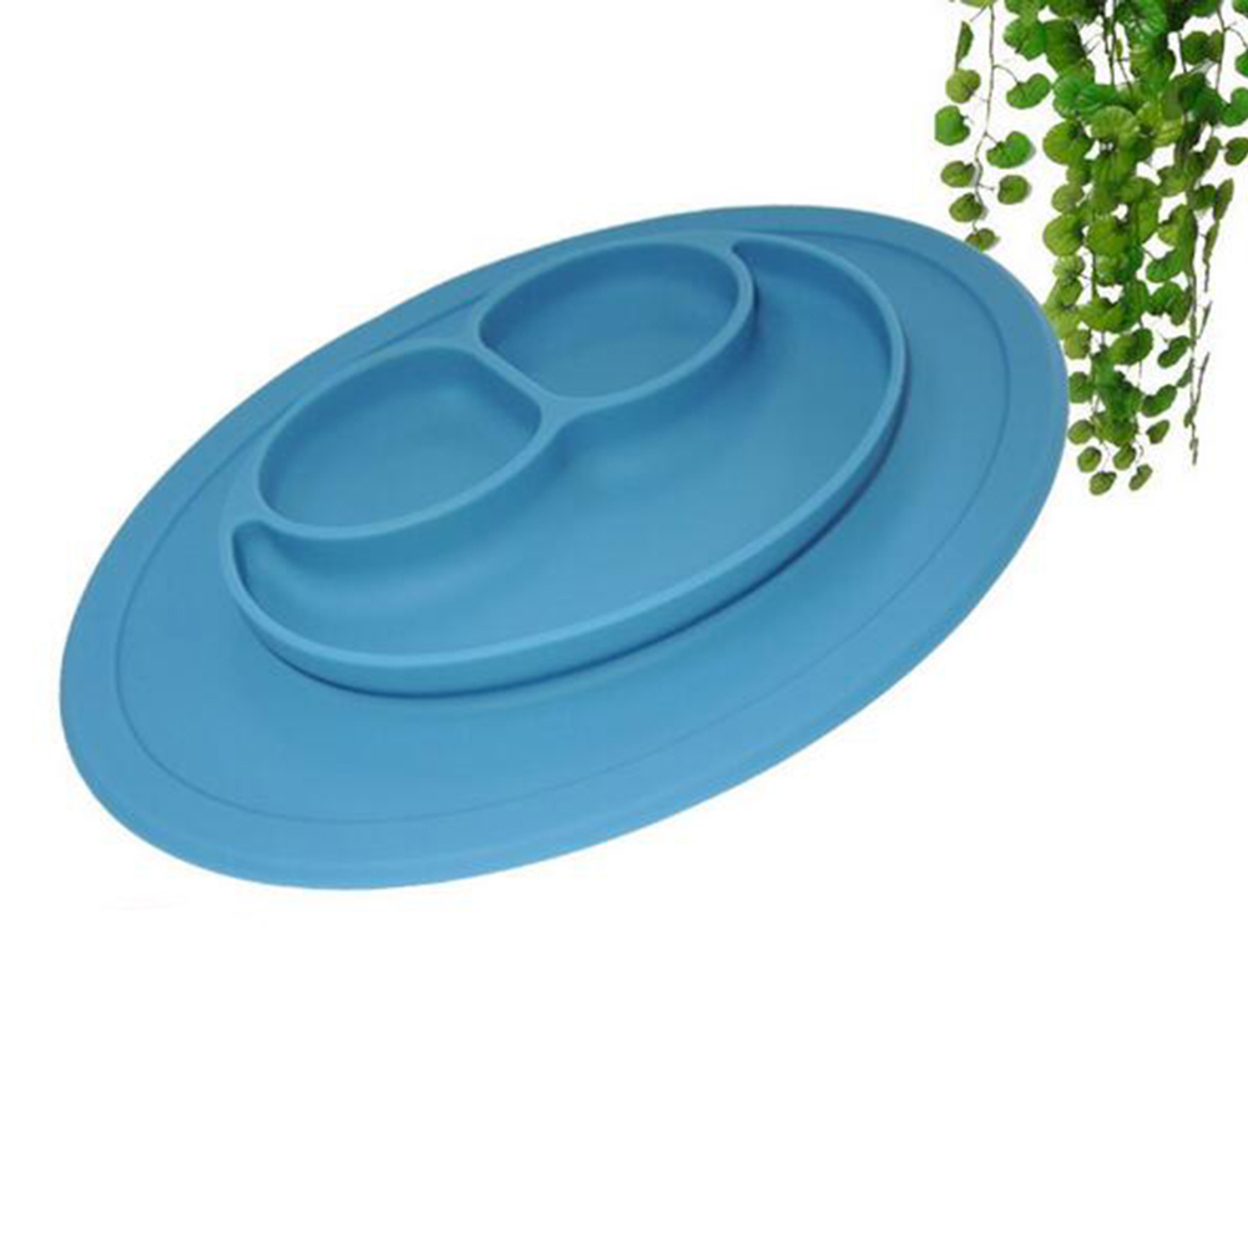 Silicone Mat Baby Kids Child Suction Table Food Tray Placemat Plate Bowls Nice 59c4be3be2246139c869d4d4